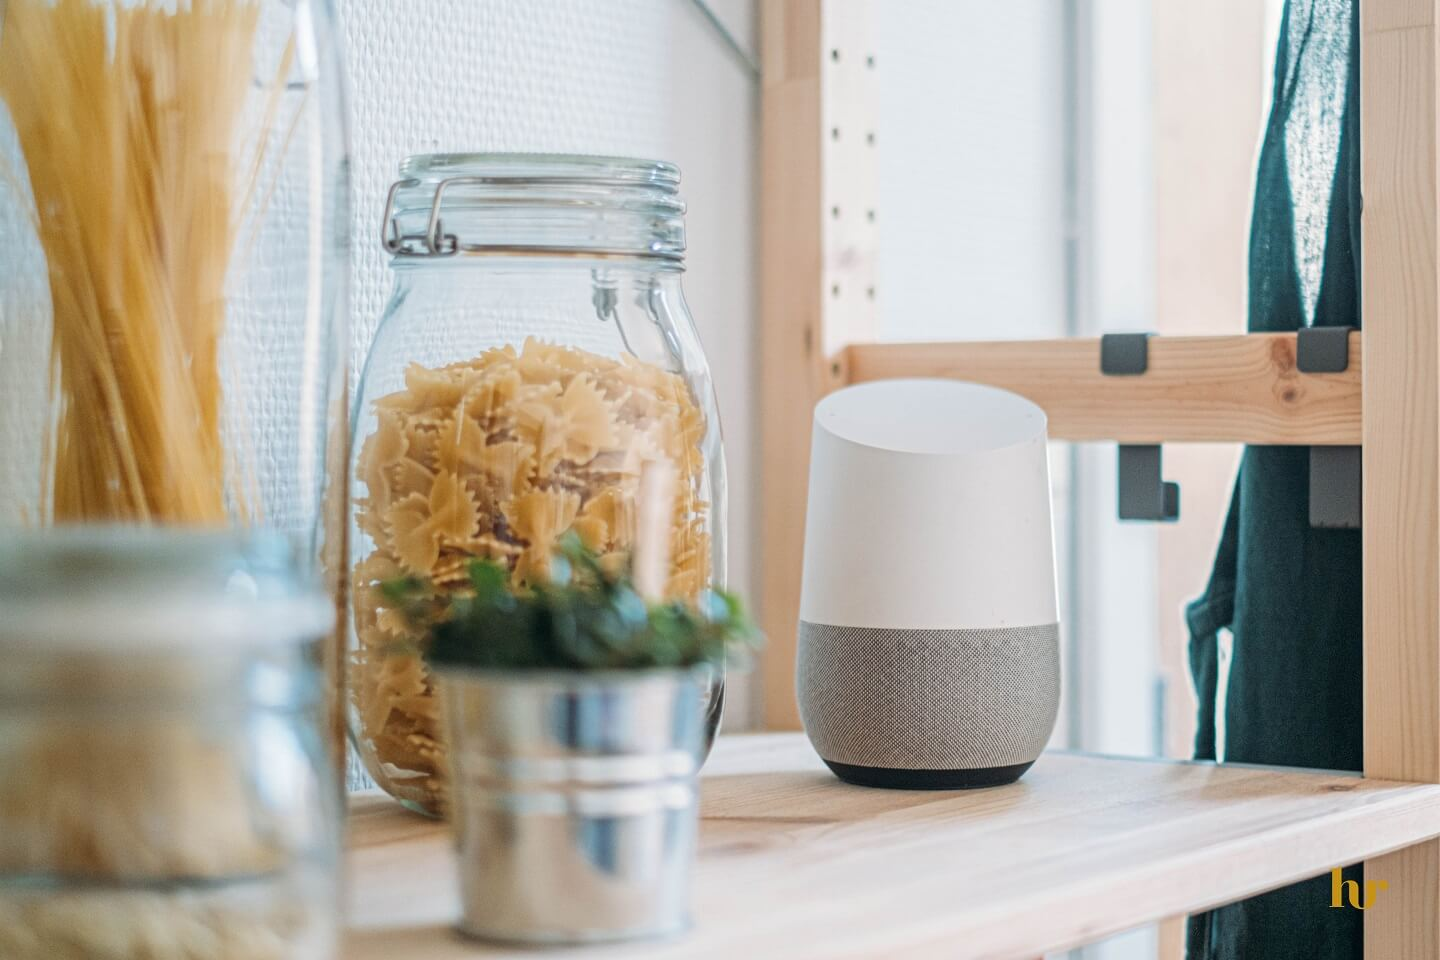 A Google Assistant sitting on a kitchen counter